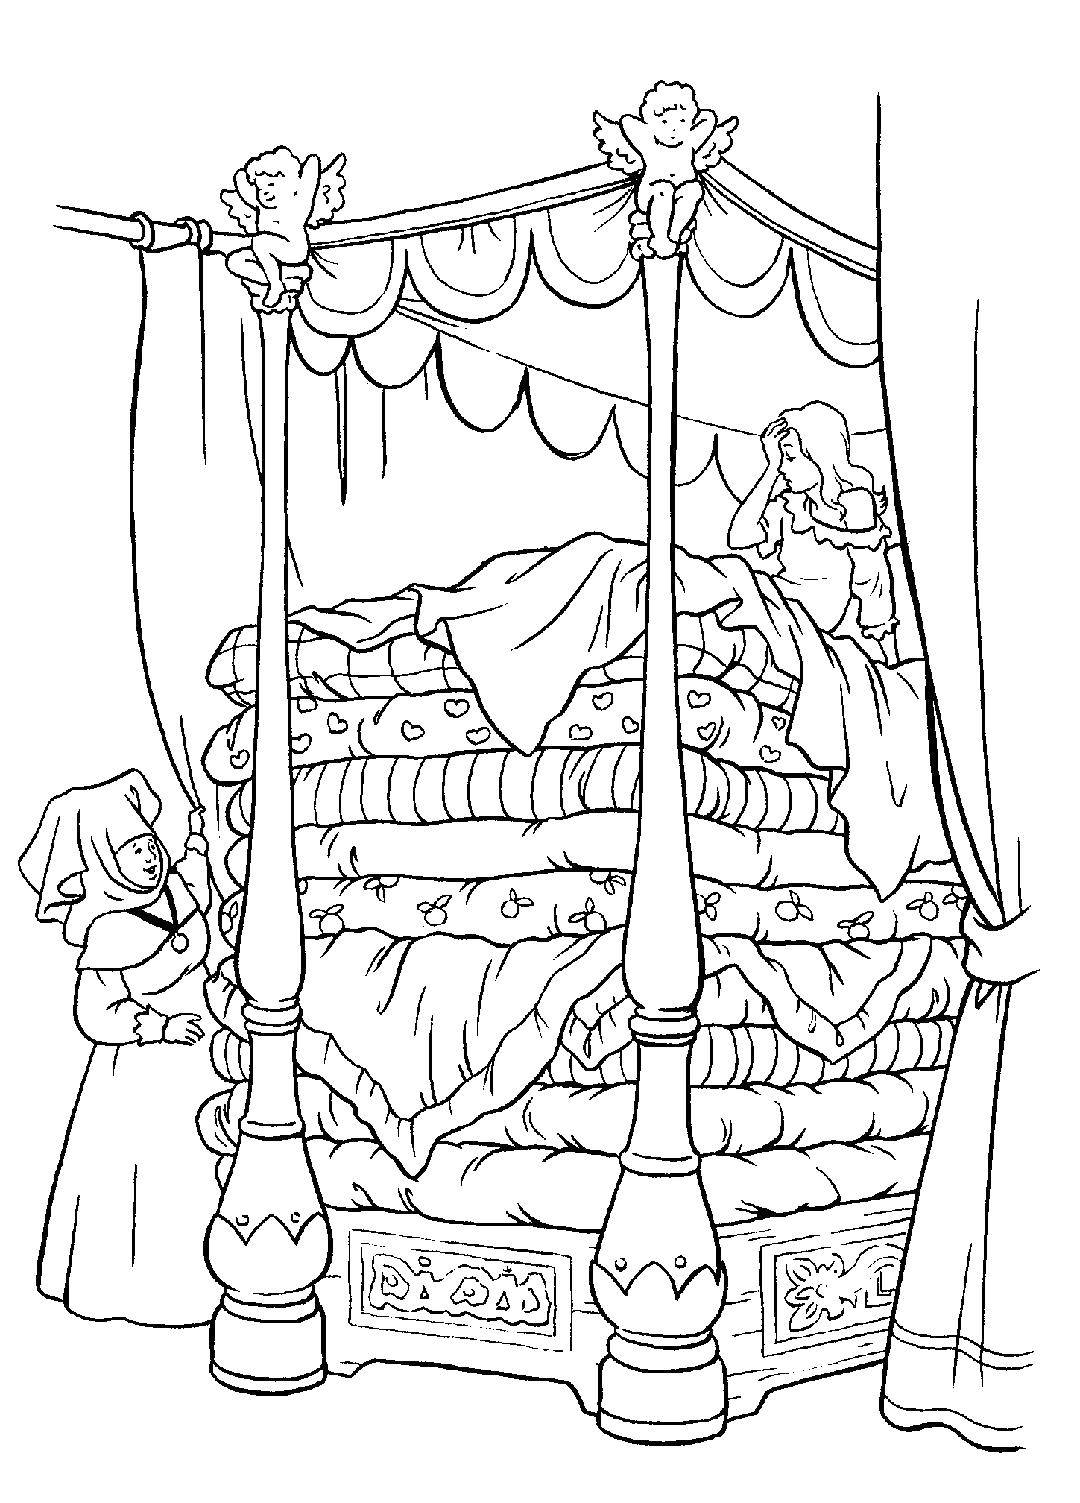 Online Coloring Pages Coloring Page The Princess And The Pea The